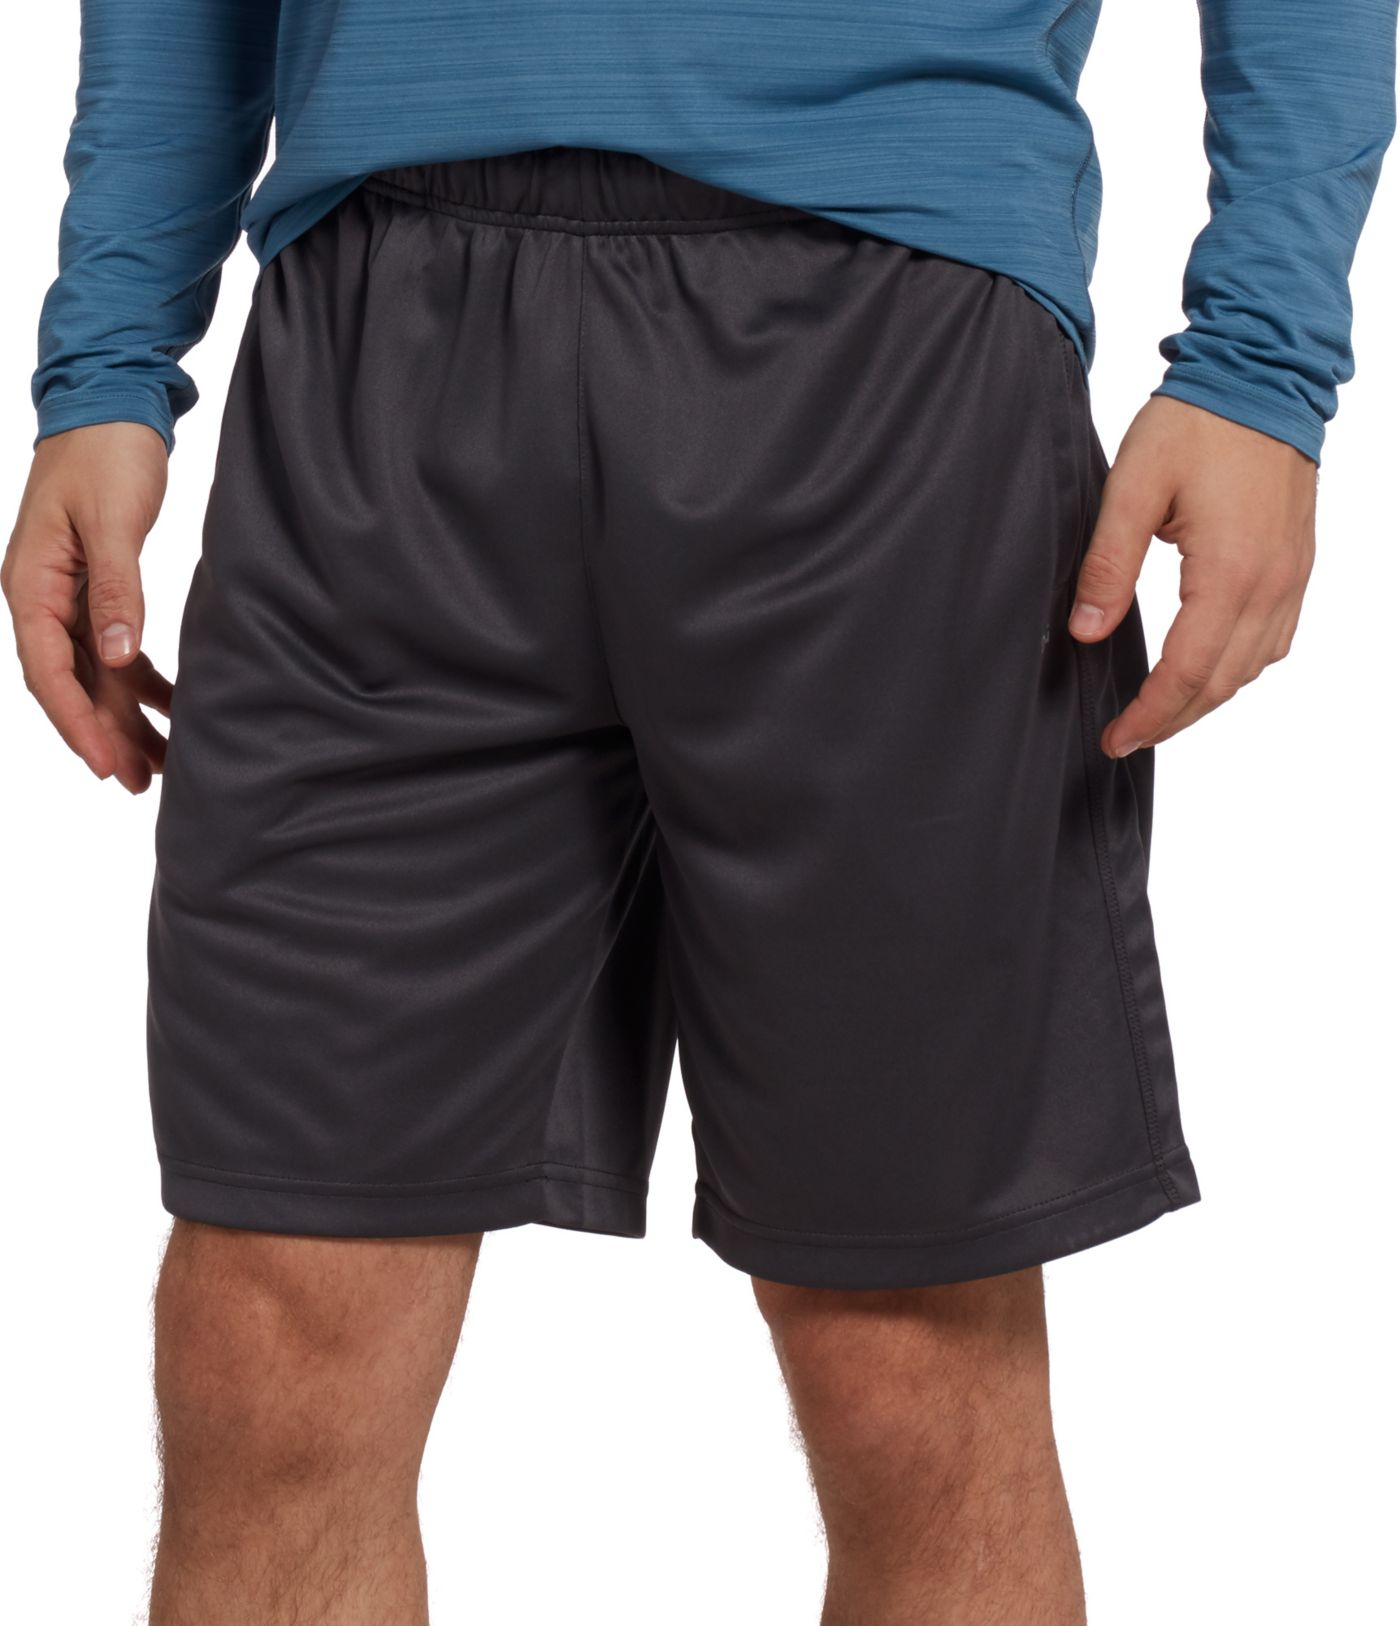 DSG Men's Training Shorts